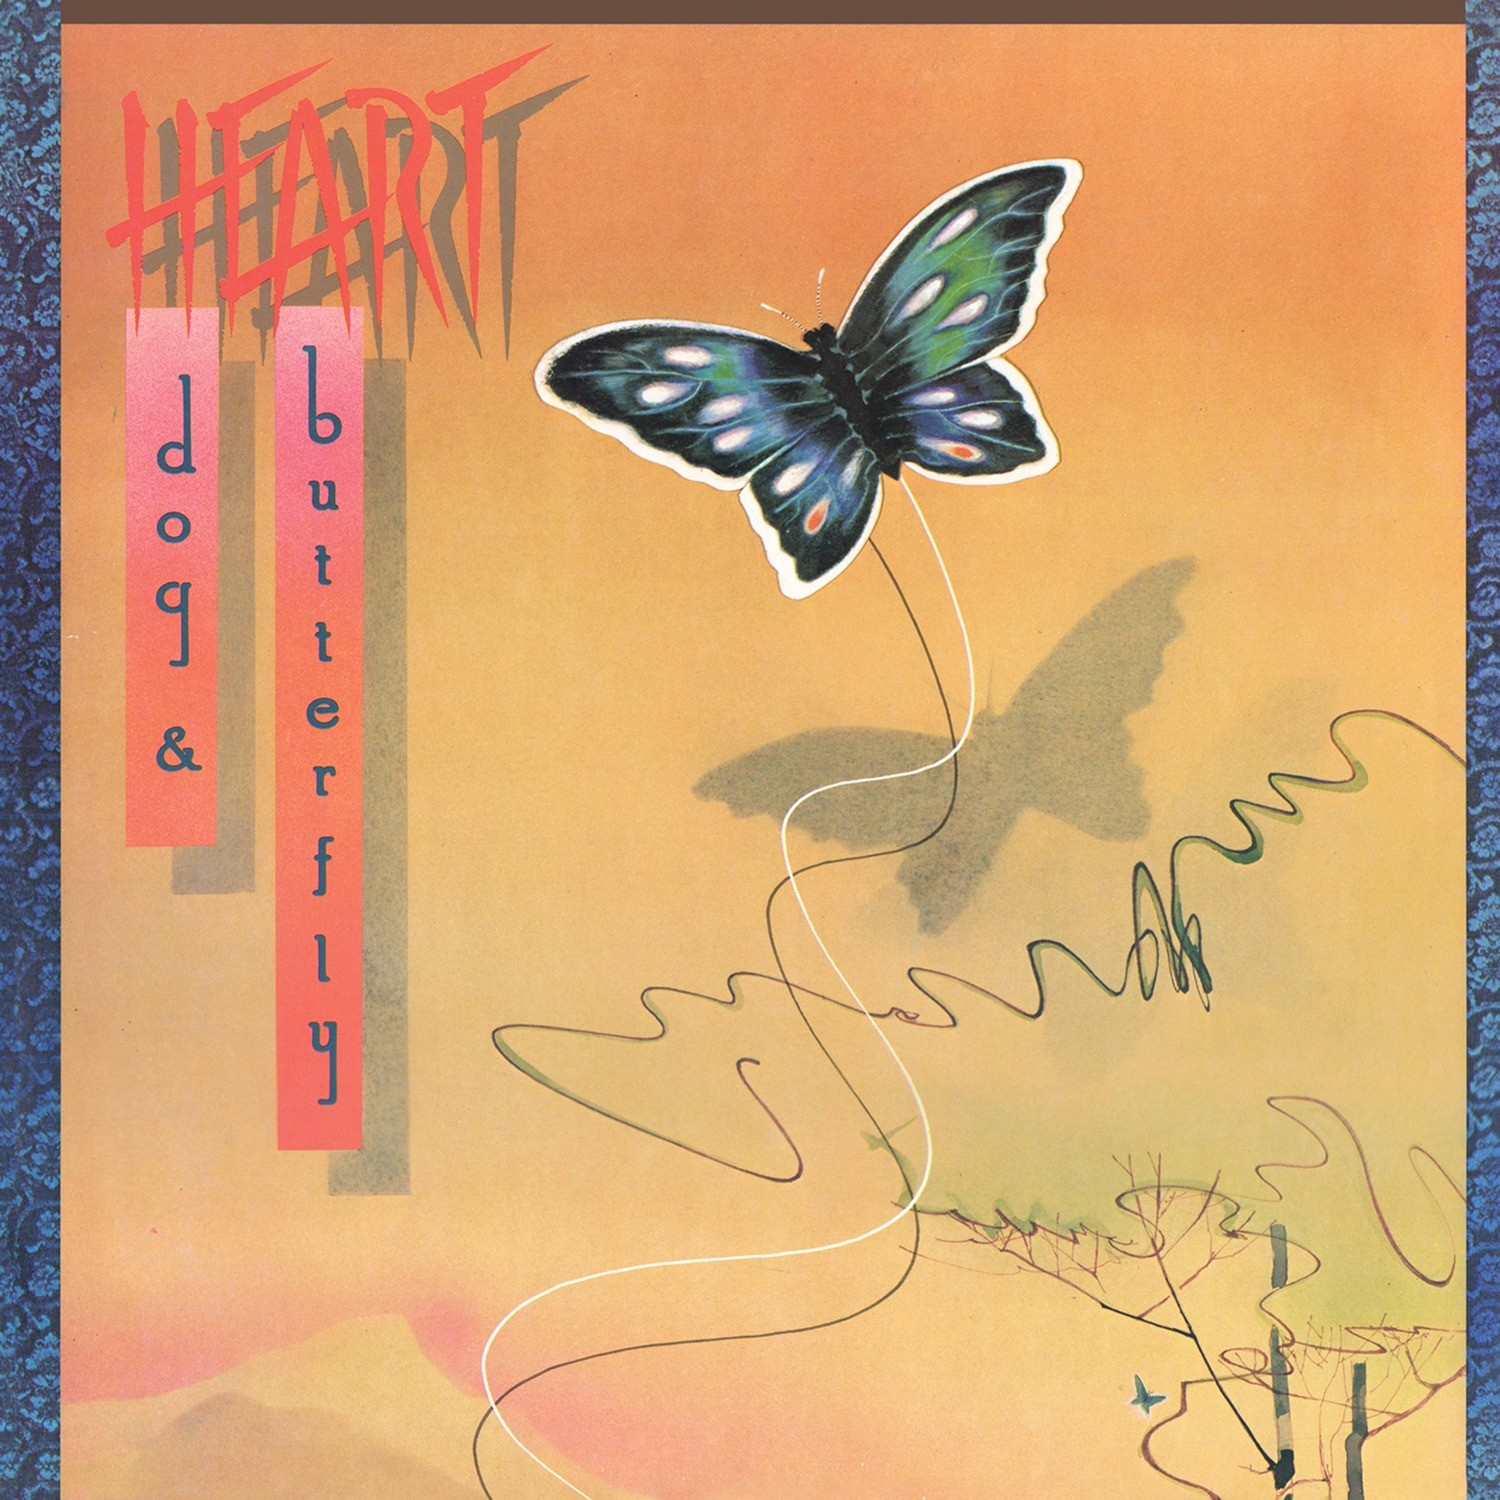 Heart - Dog and Butterfly LP